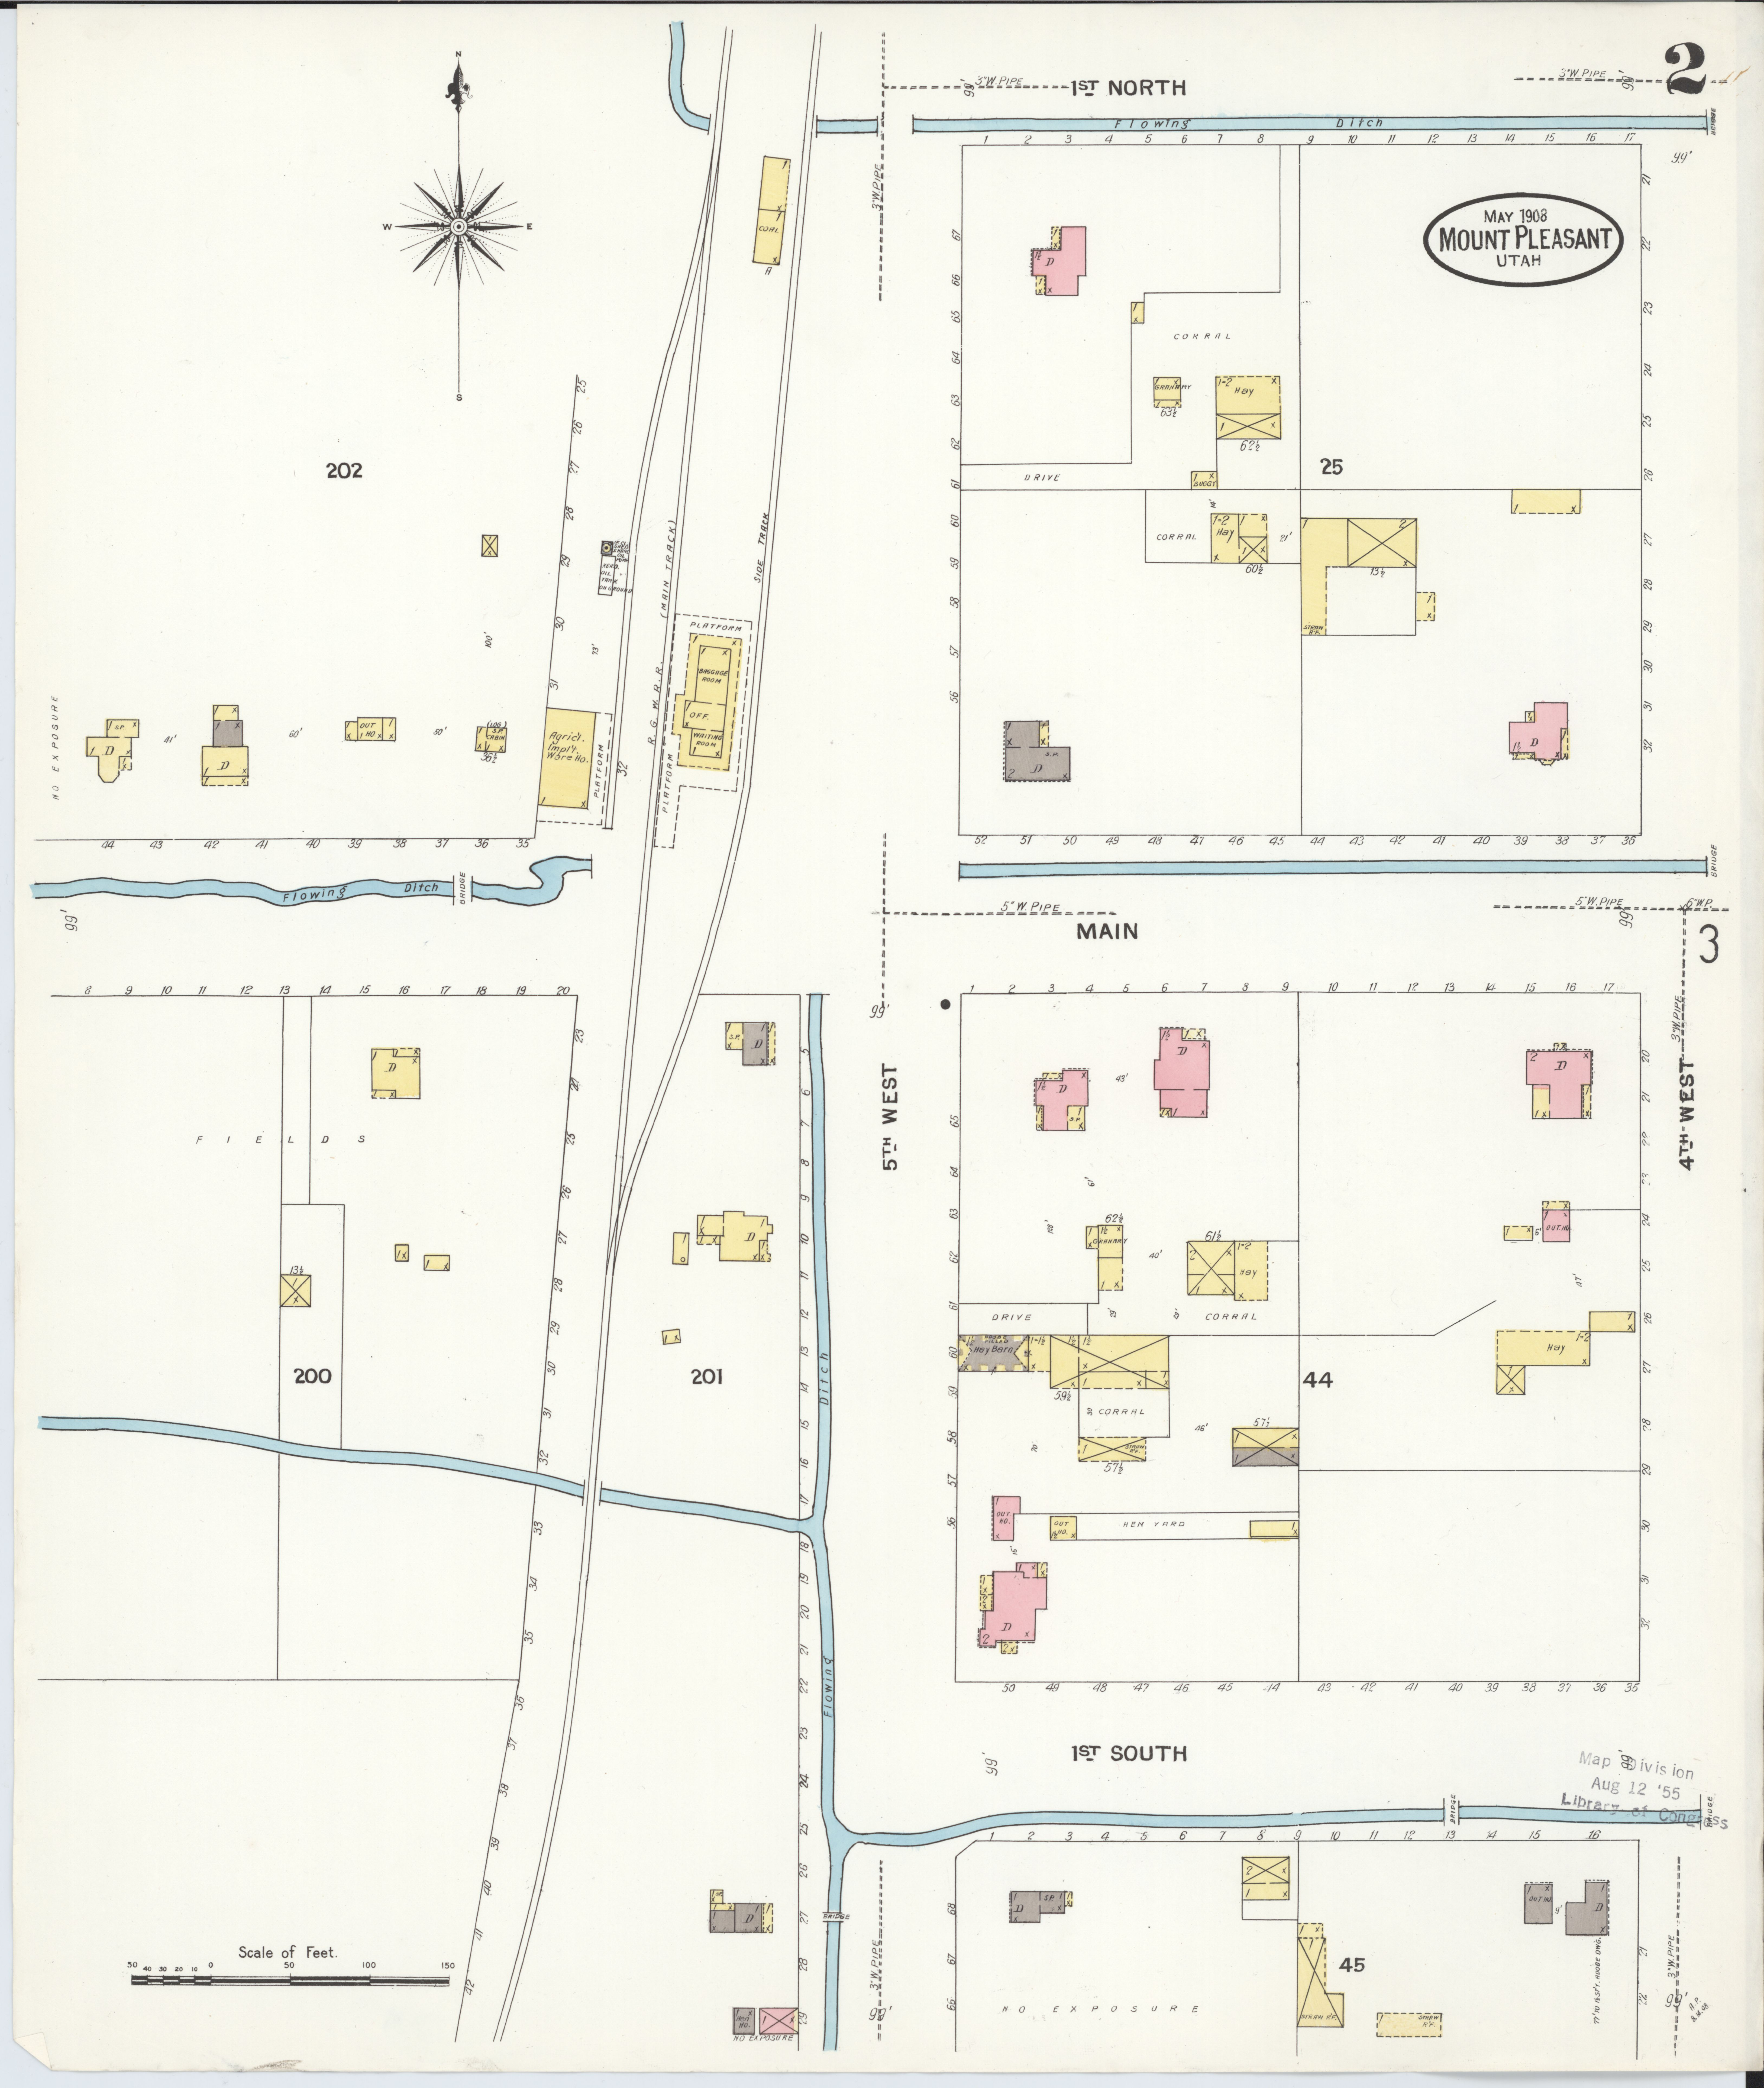 Sanpete County Utah Map.File Sanborn Fire Insurance Map From Mount Pleasant Sanpete County